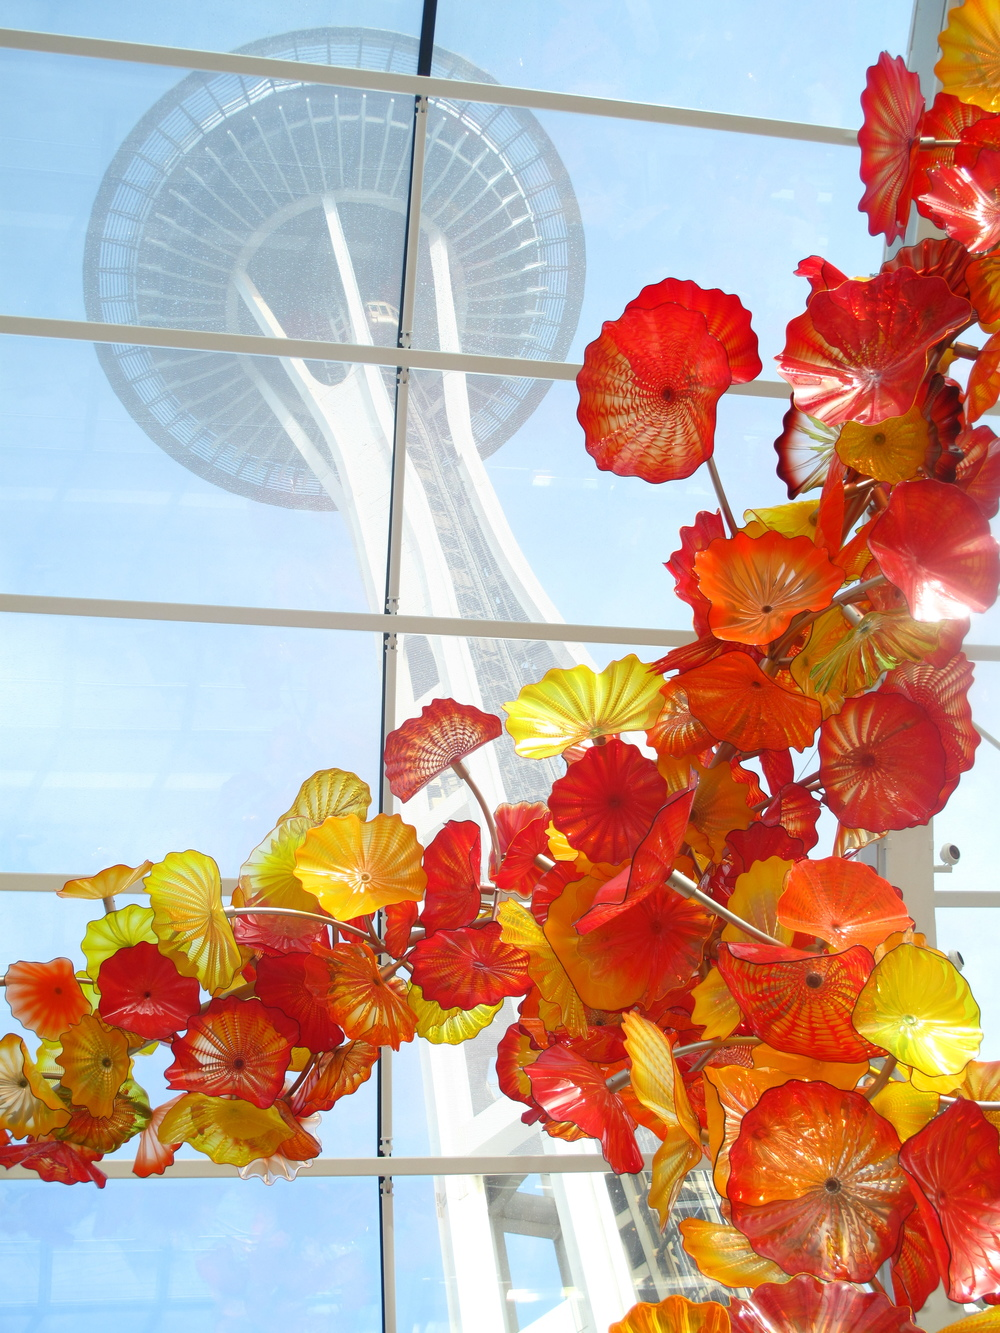 The Seattle Space Needle, seen from the Chihuly Museum - glass flowers and blue sky.